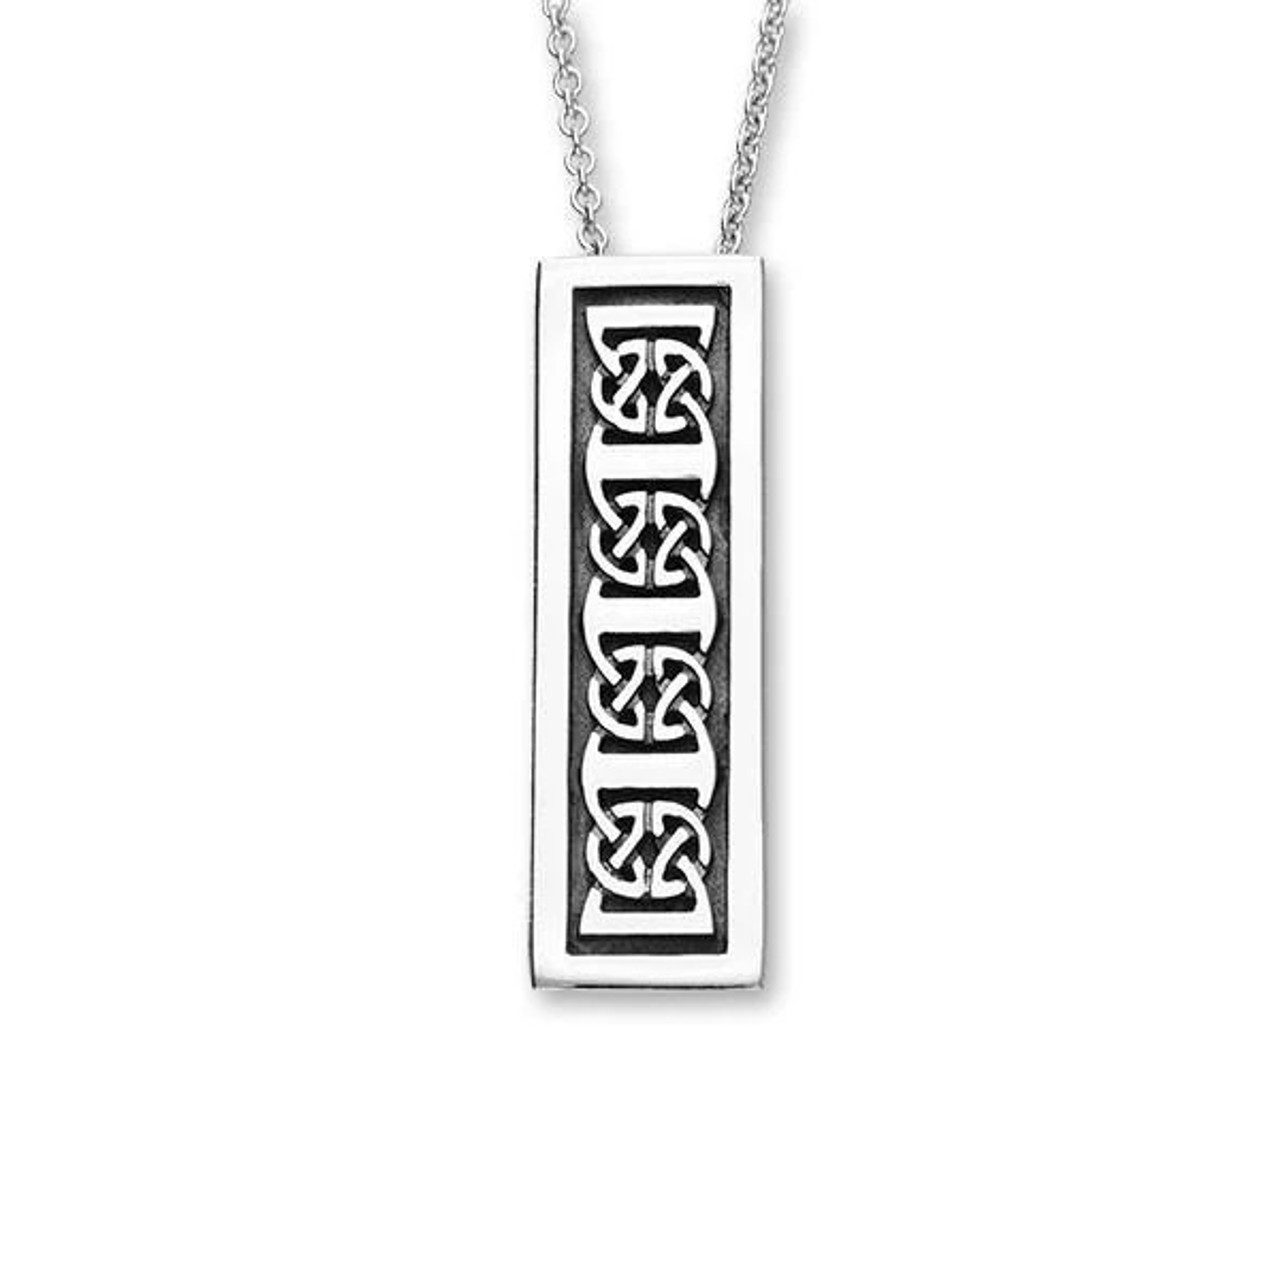 Rectangular Celtic Knot Pendant Necklace